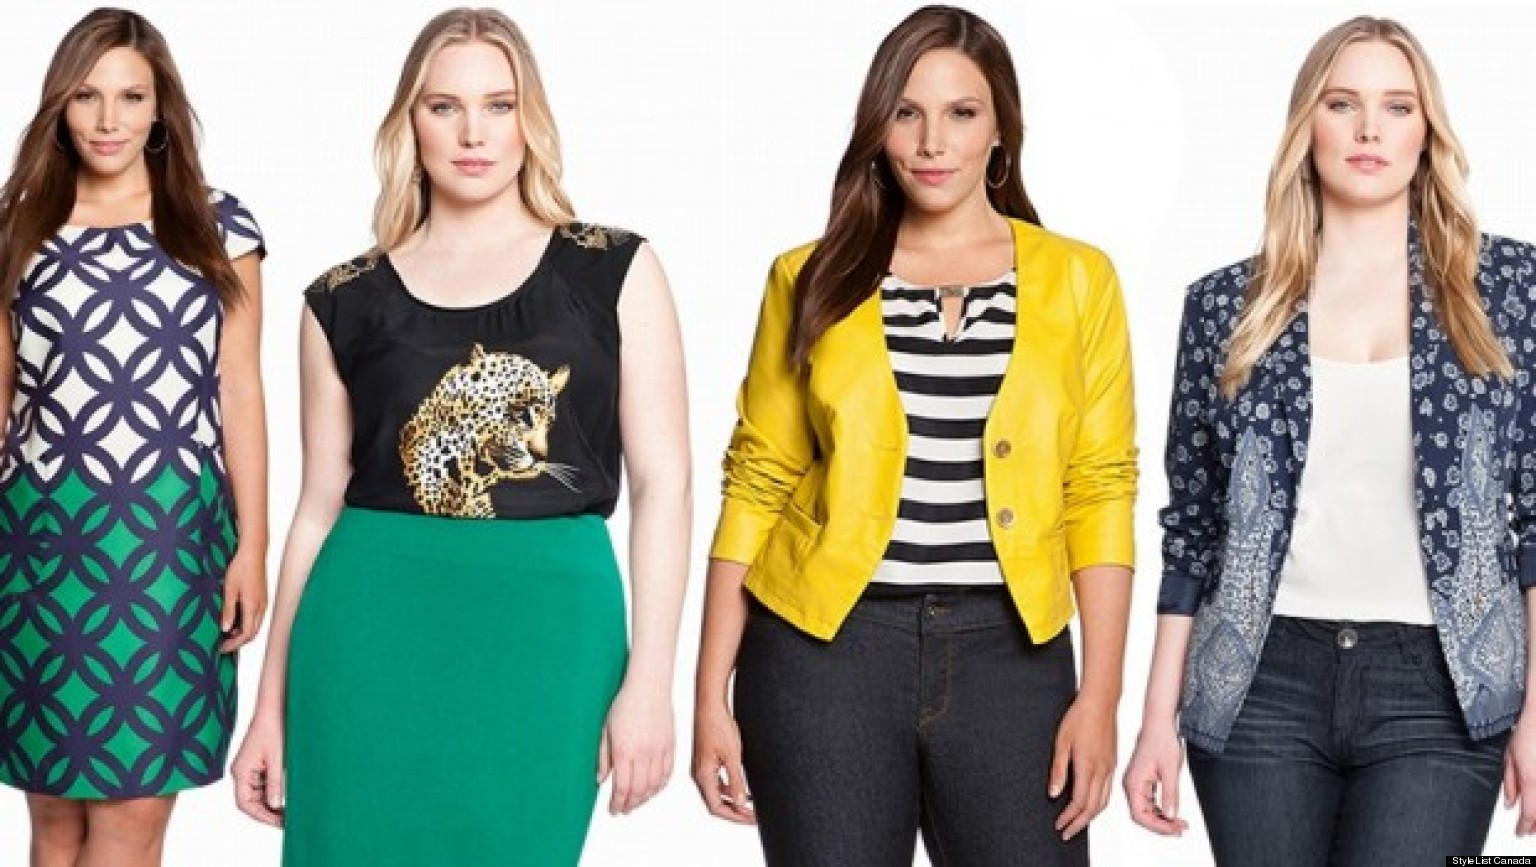 Plus Size Designer Clothing Online comewalkrate you here which